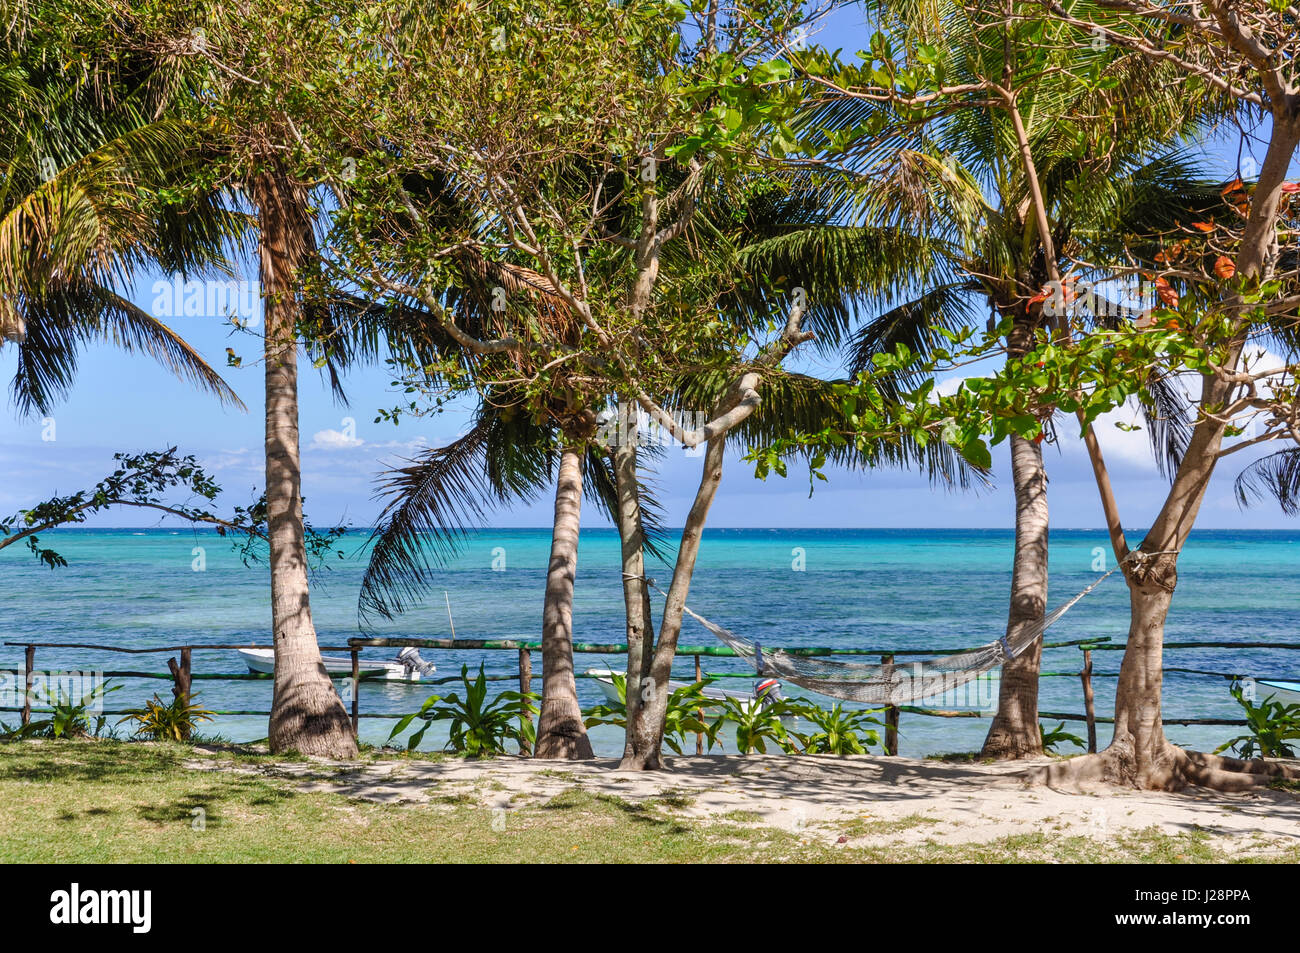 Palm trees and see in Nacula Island, part of the Yasawa Island group in Fiji - Stock Image